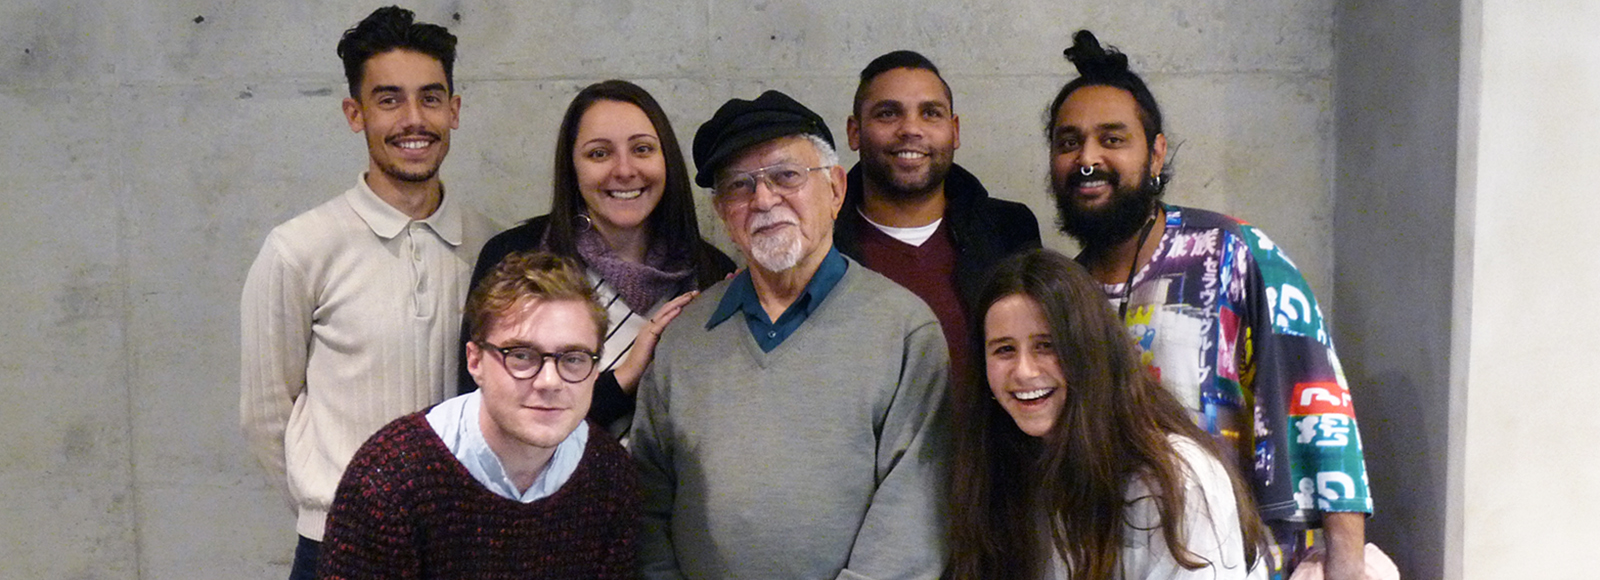 Vic Chapman with UNSW Art & Design students and alumni